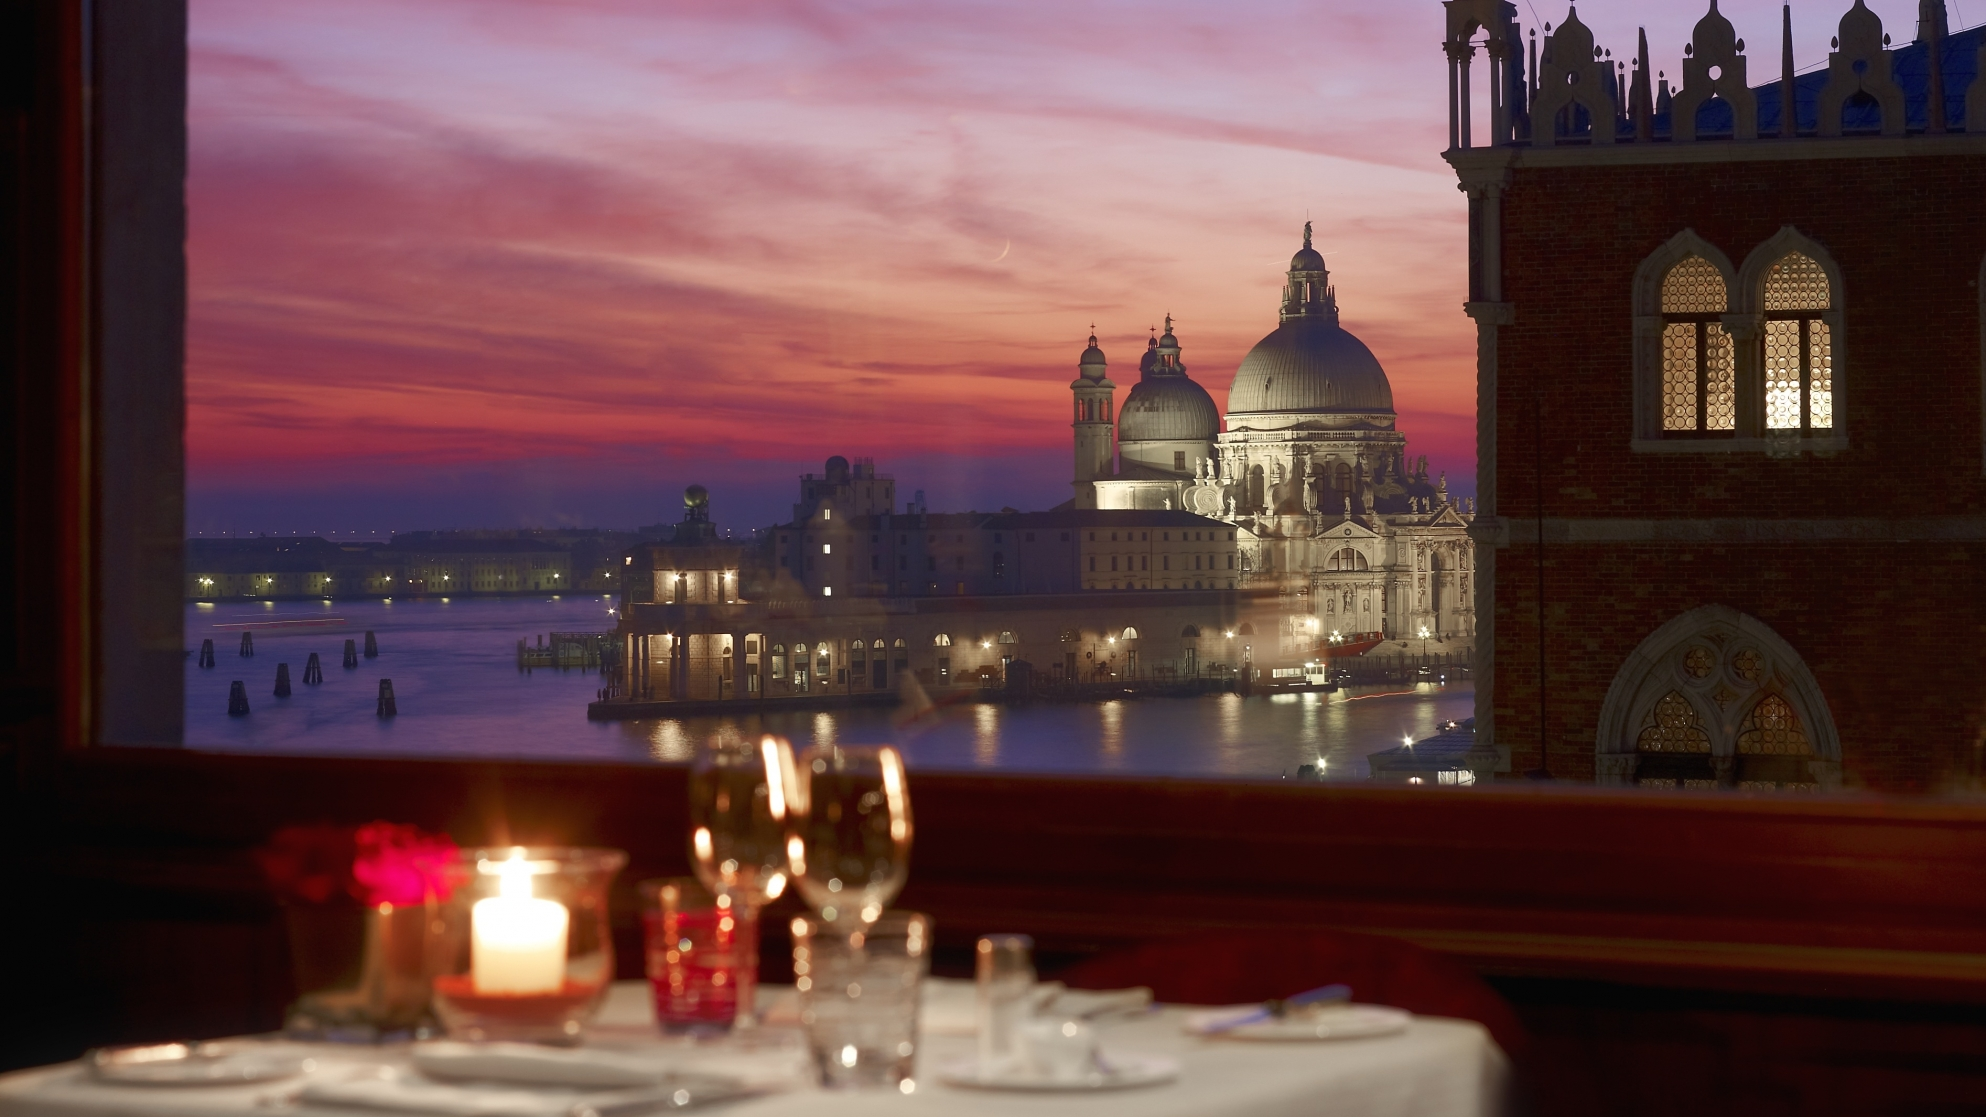 intimate dining at the Restaurant Terrazza Danieli